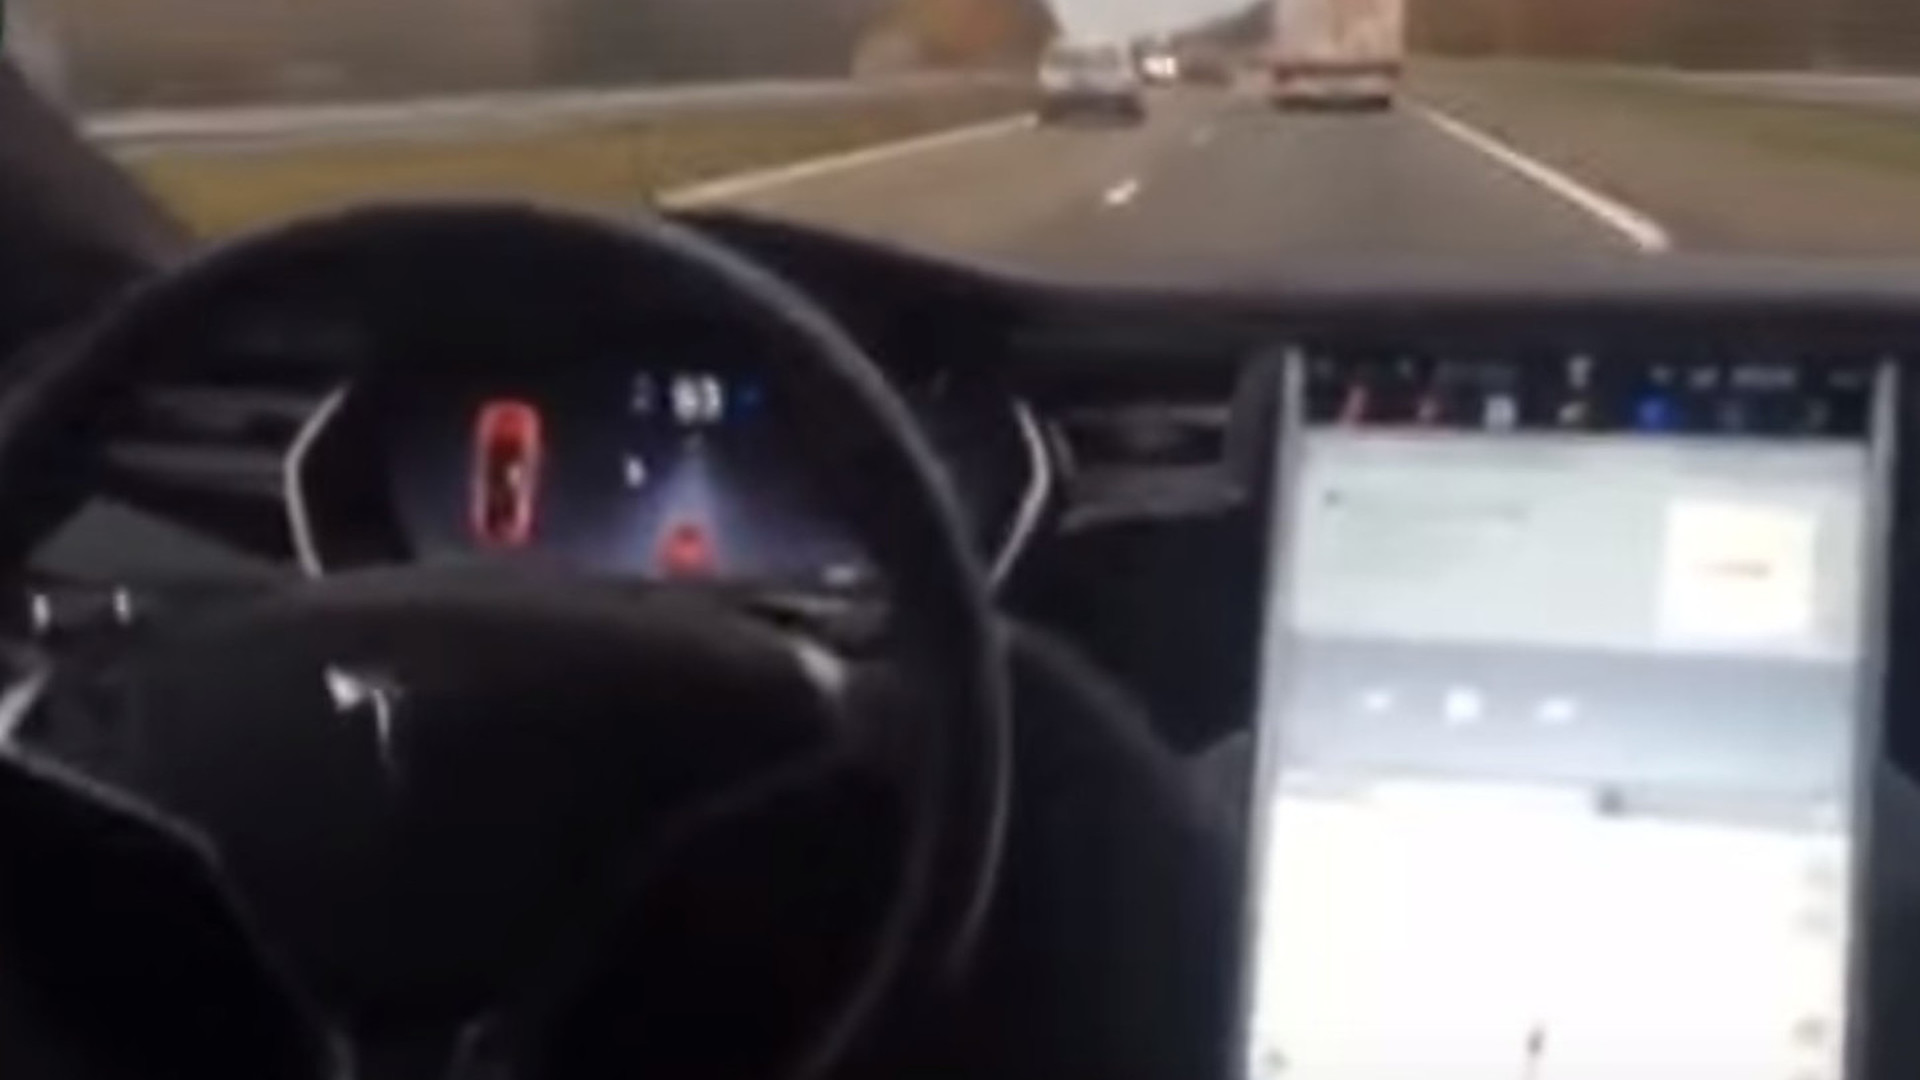 Man tries Tesla Autopilot from backseat, Musk says constraints are coming [video]